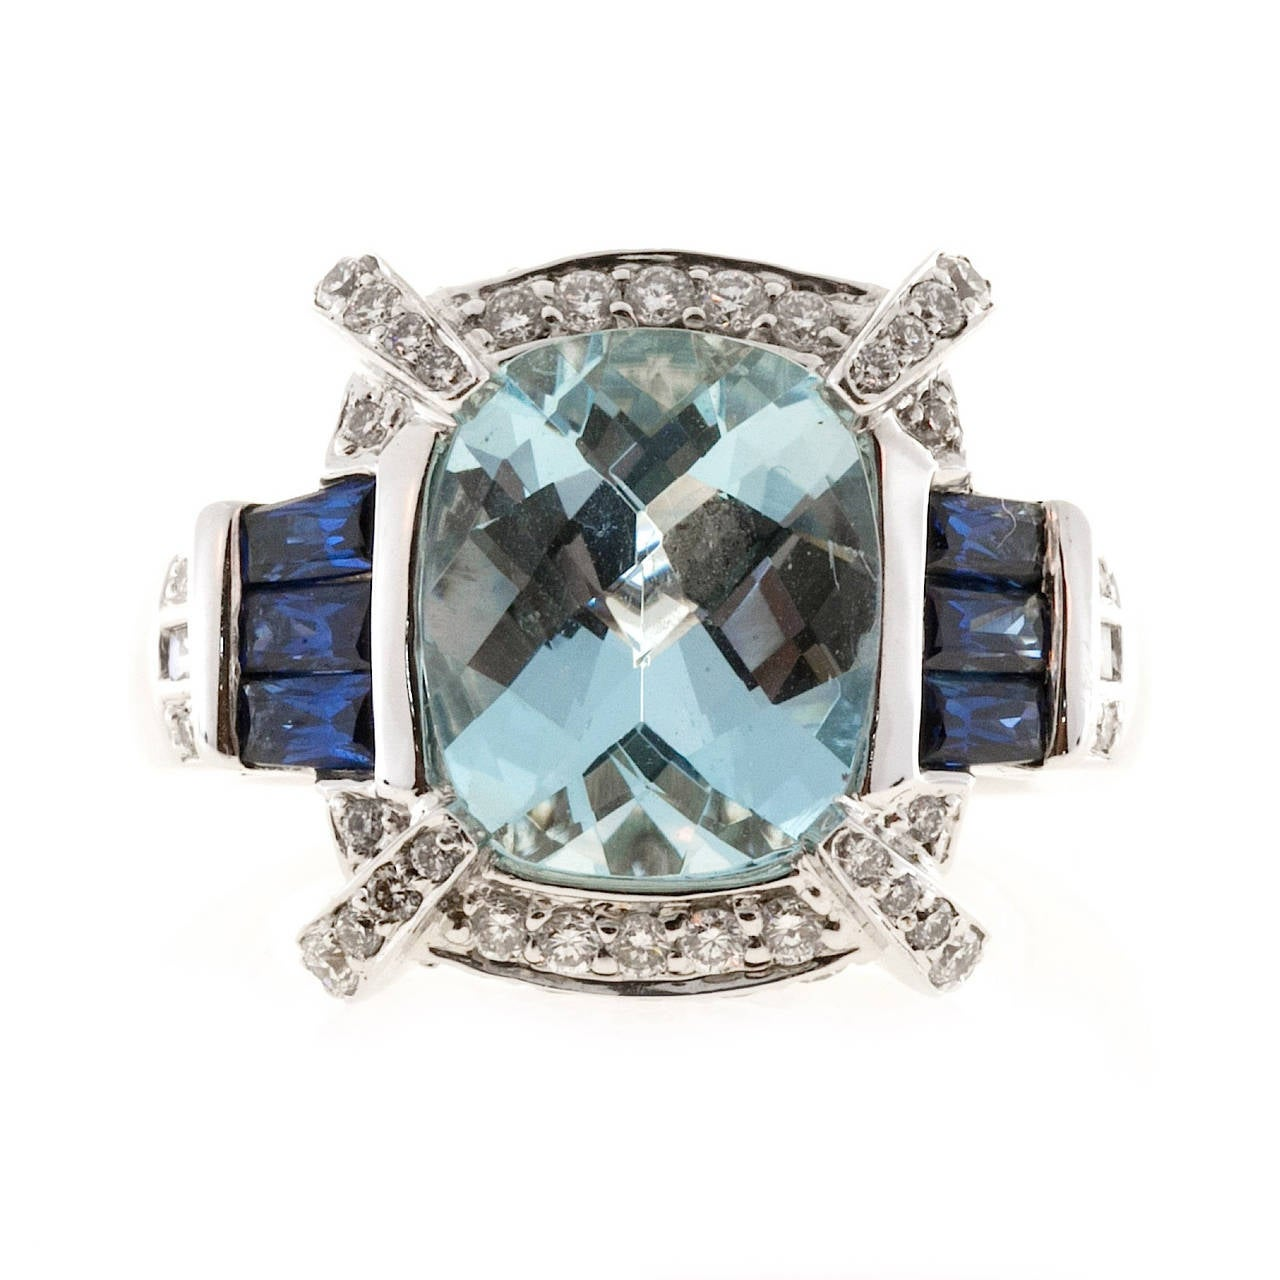 Charles Krypell Aquamarine Sapphire Diamond Gold Cocktail Ring For Sale 1